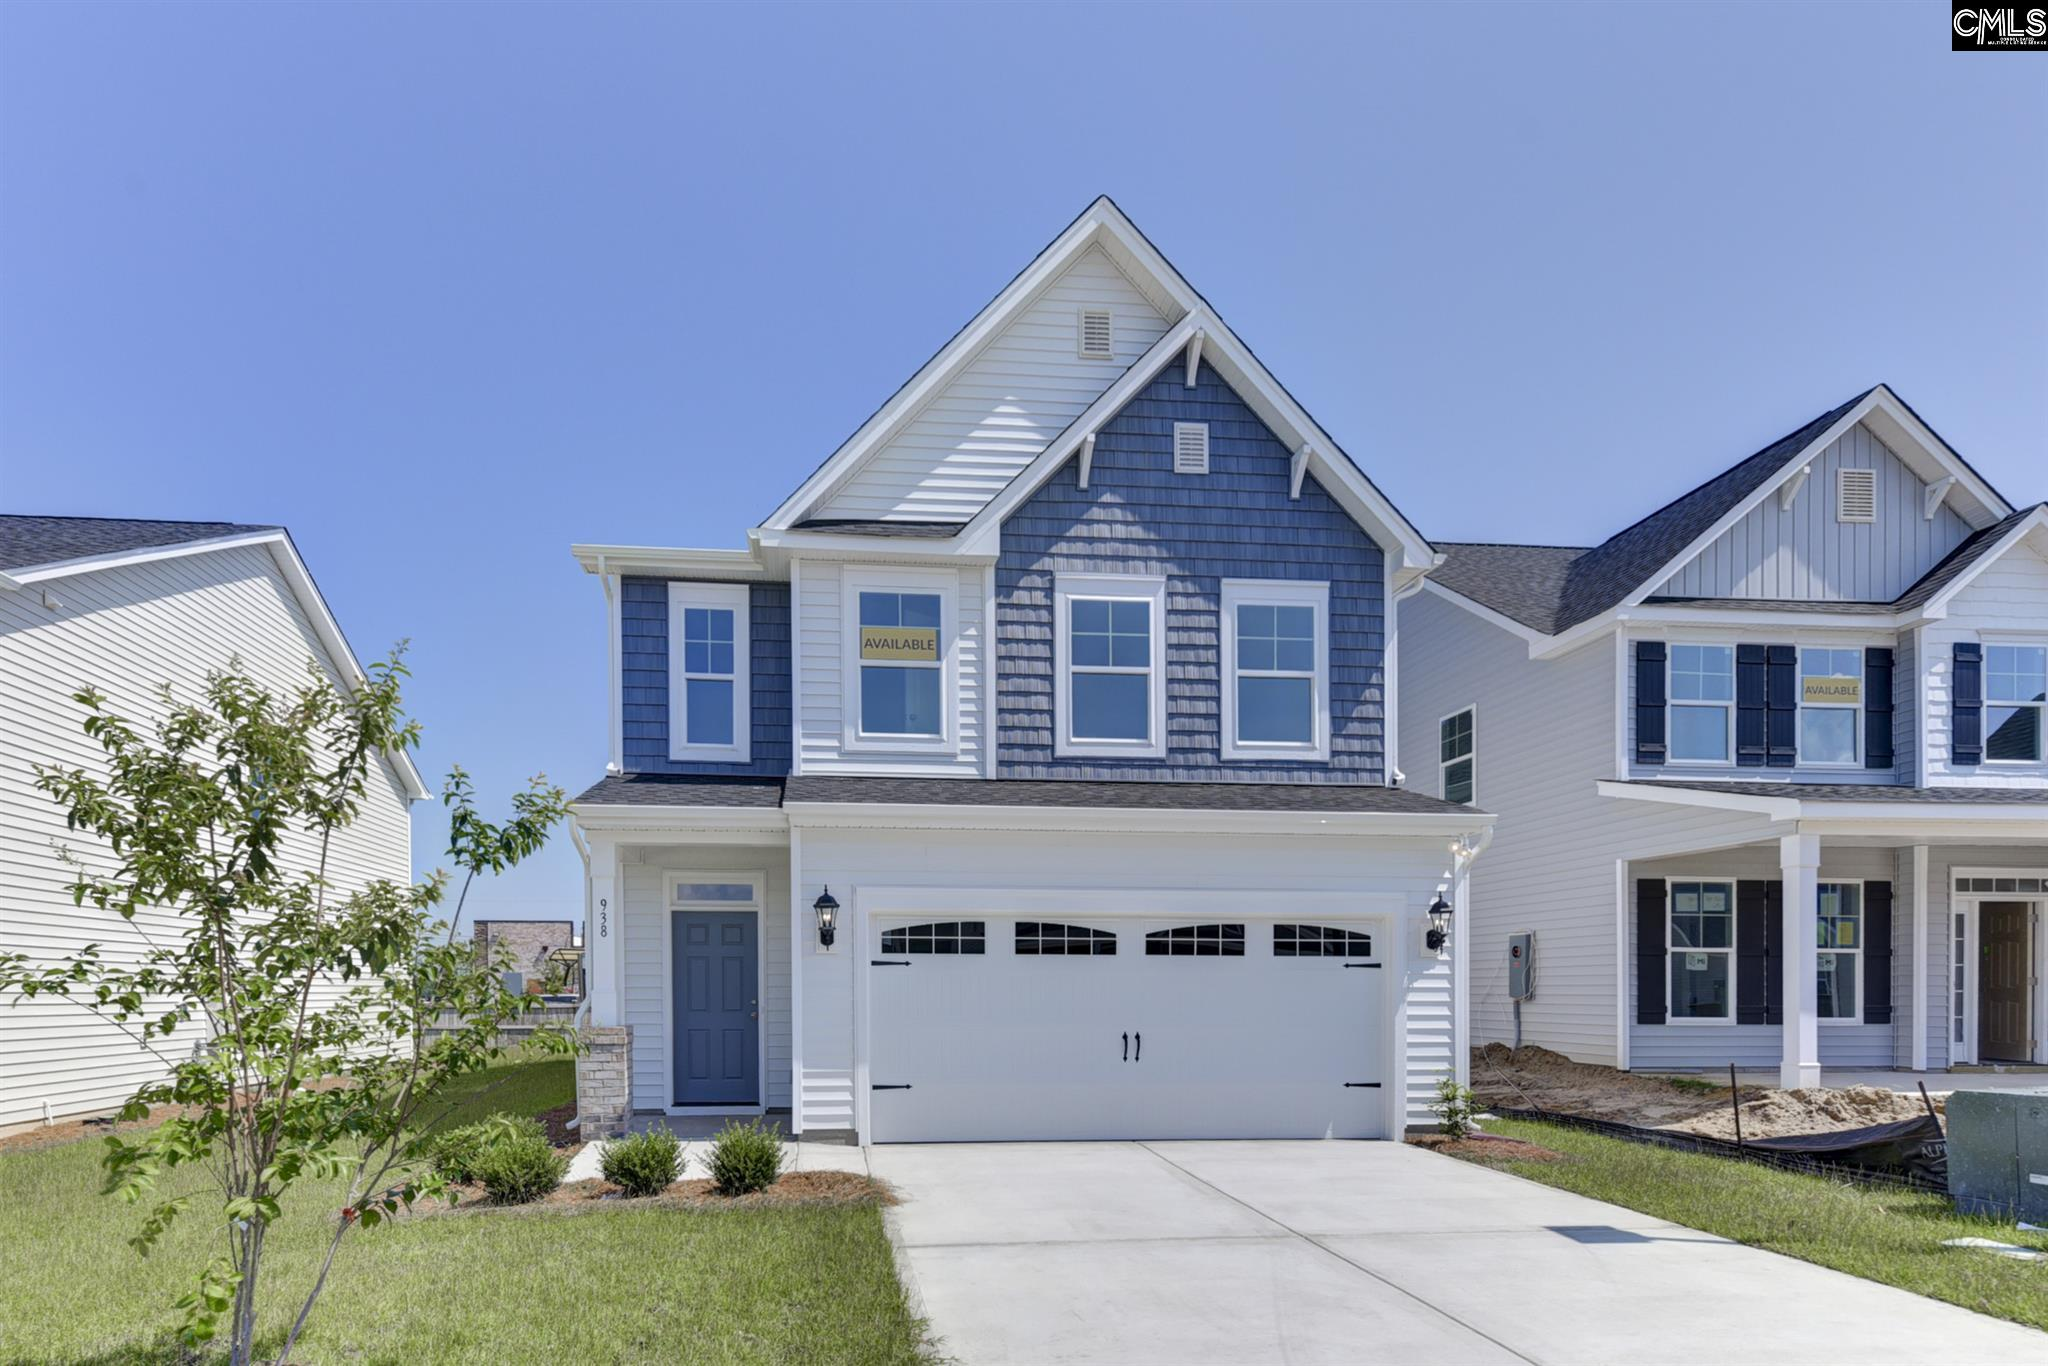 705 Council Lexington, SC 29072